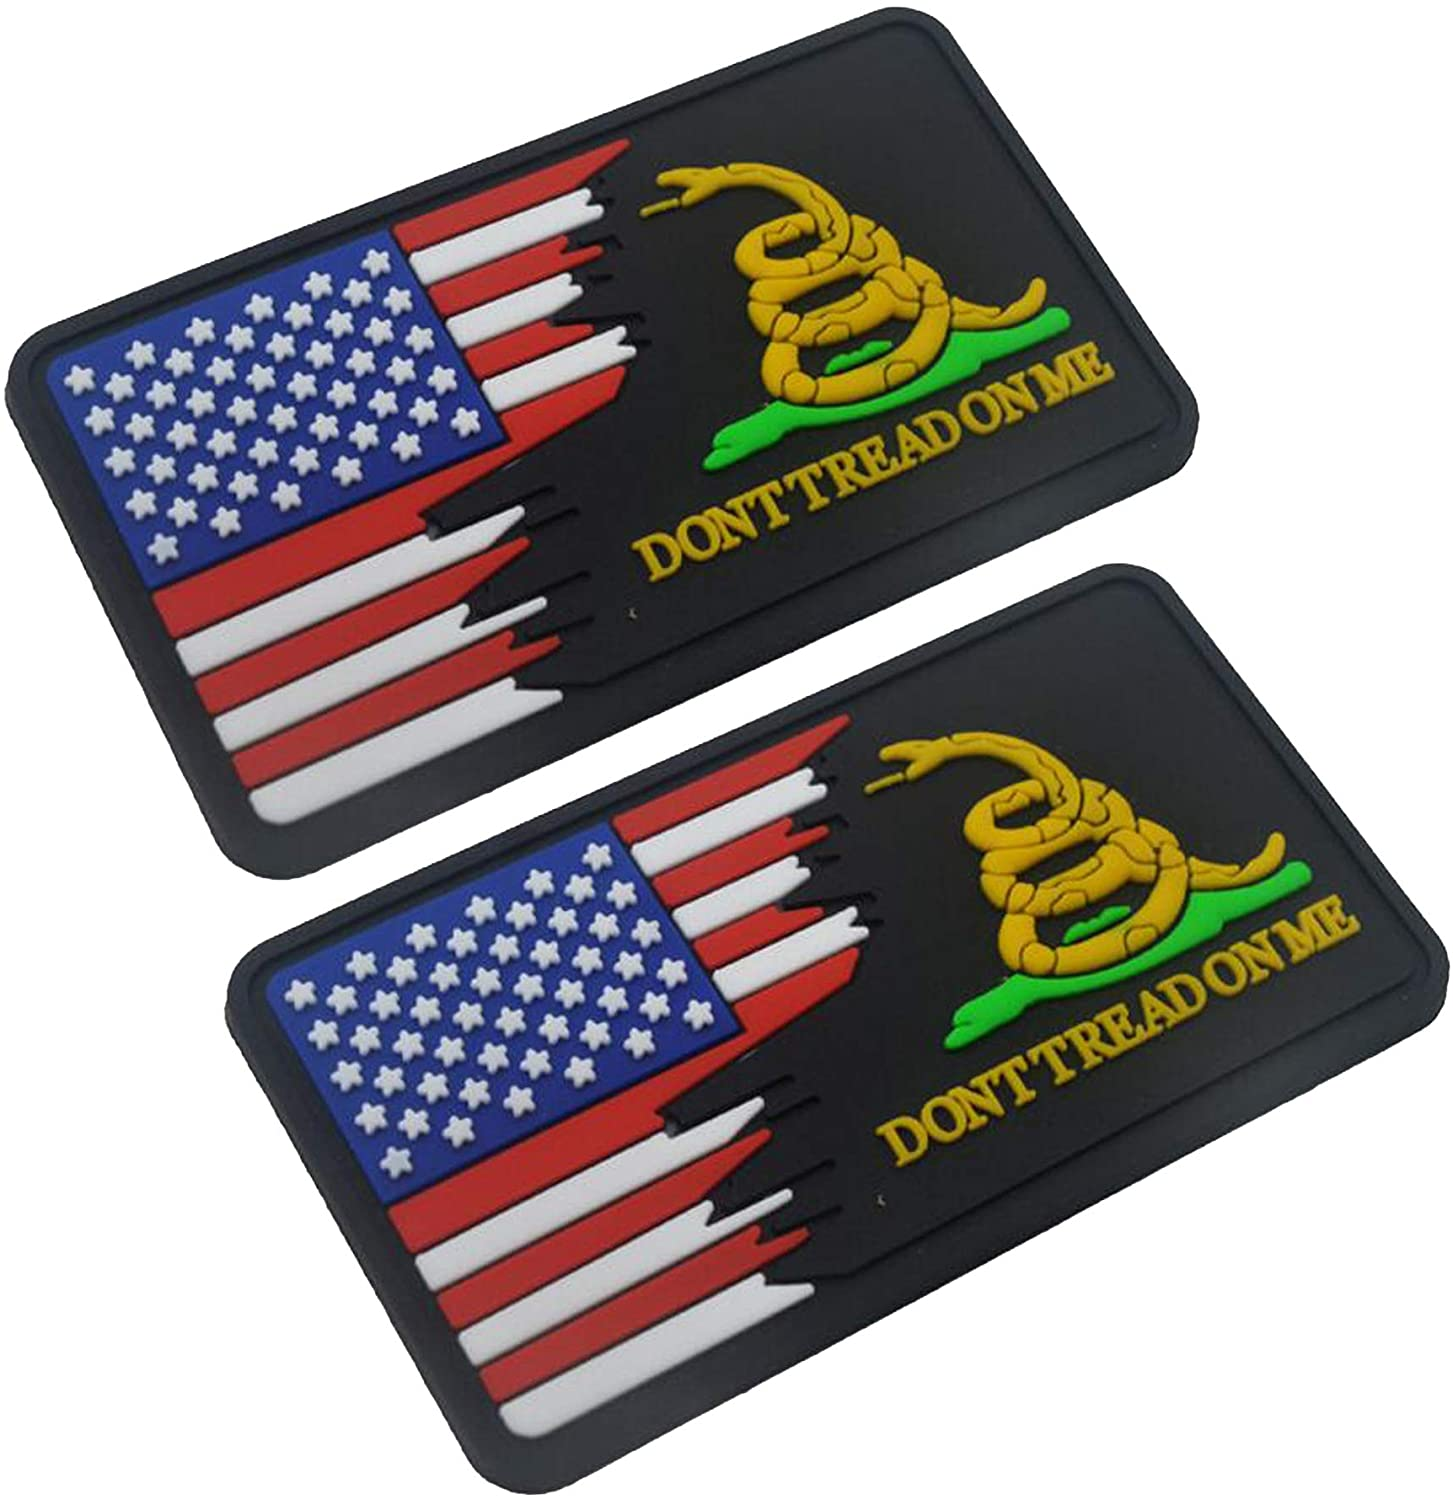 3D PVC Don't Tread On Me and USA Flag Tactical Military Morale Fastener Hook Patch 3.15x1.97 inch Sized 2PCS